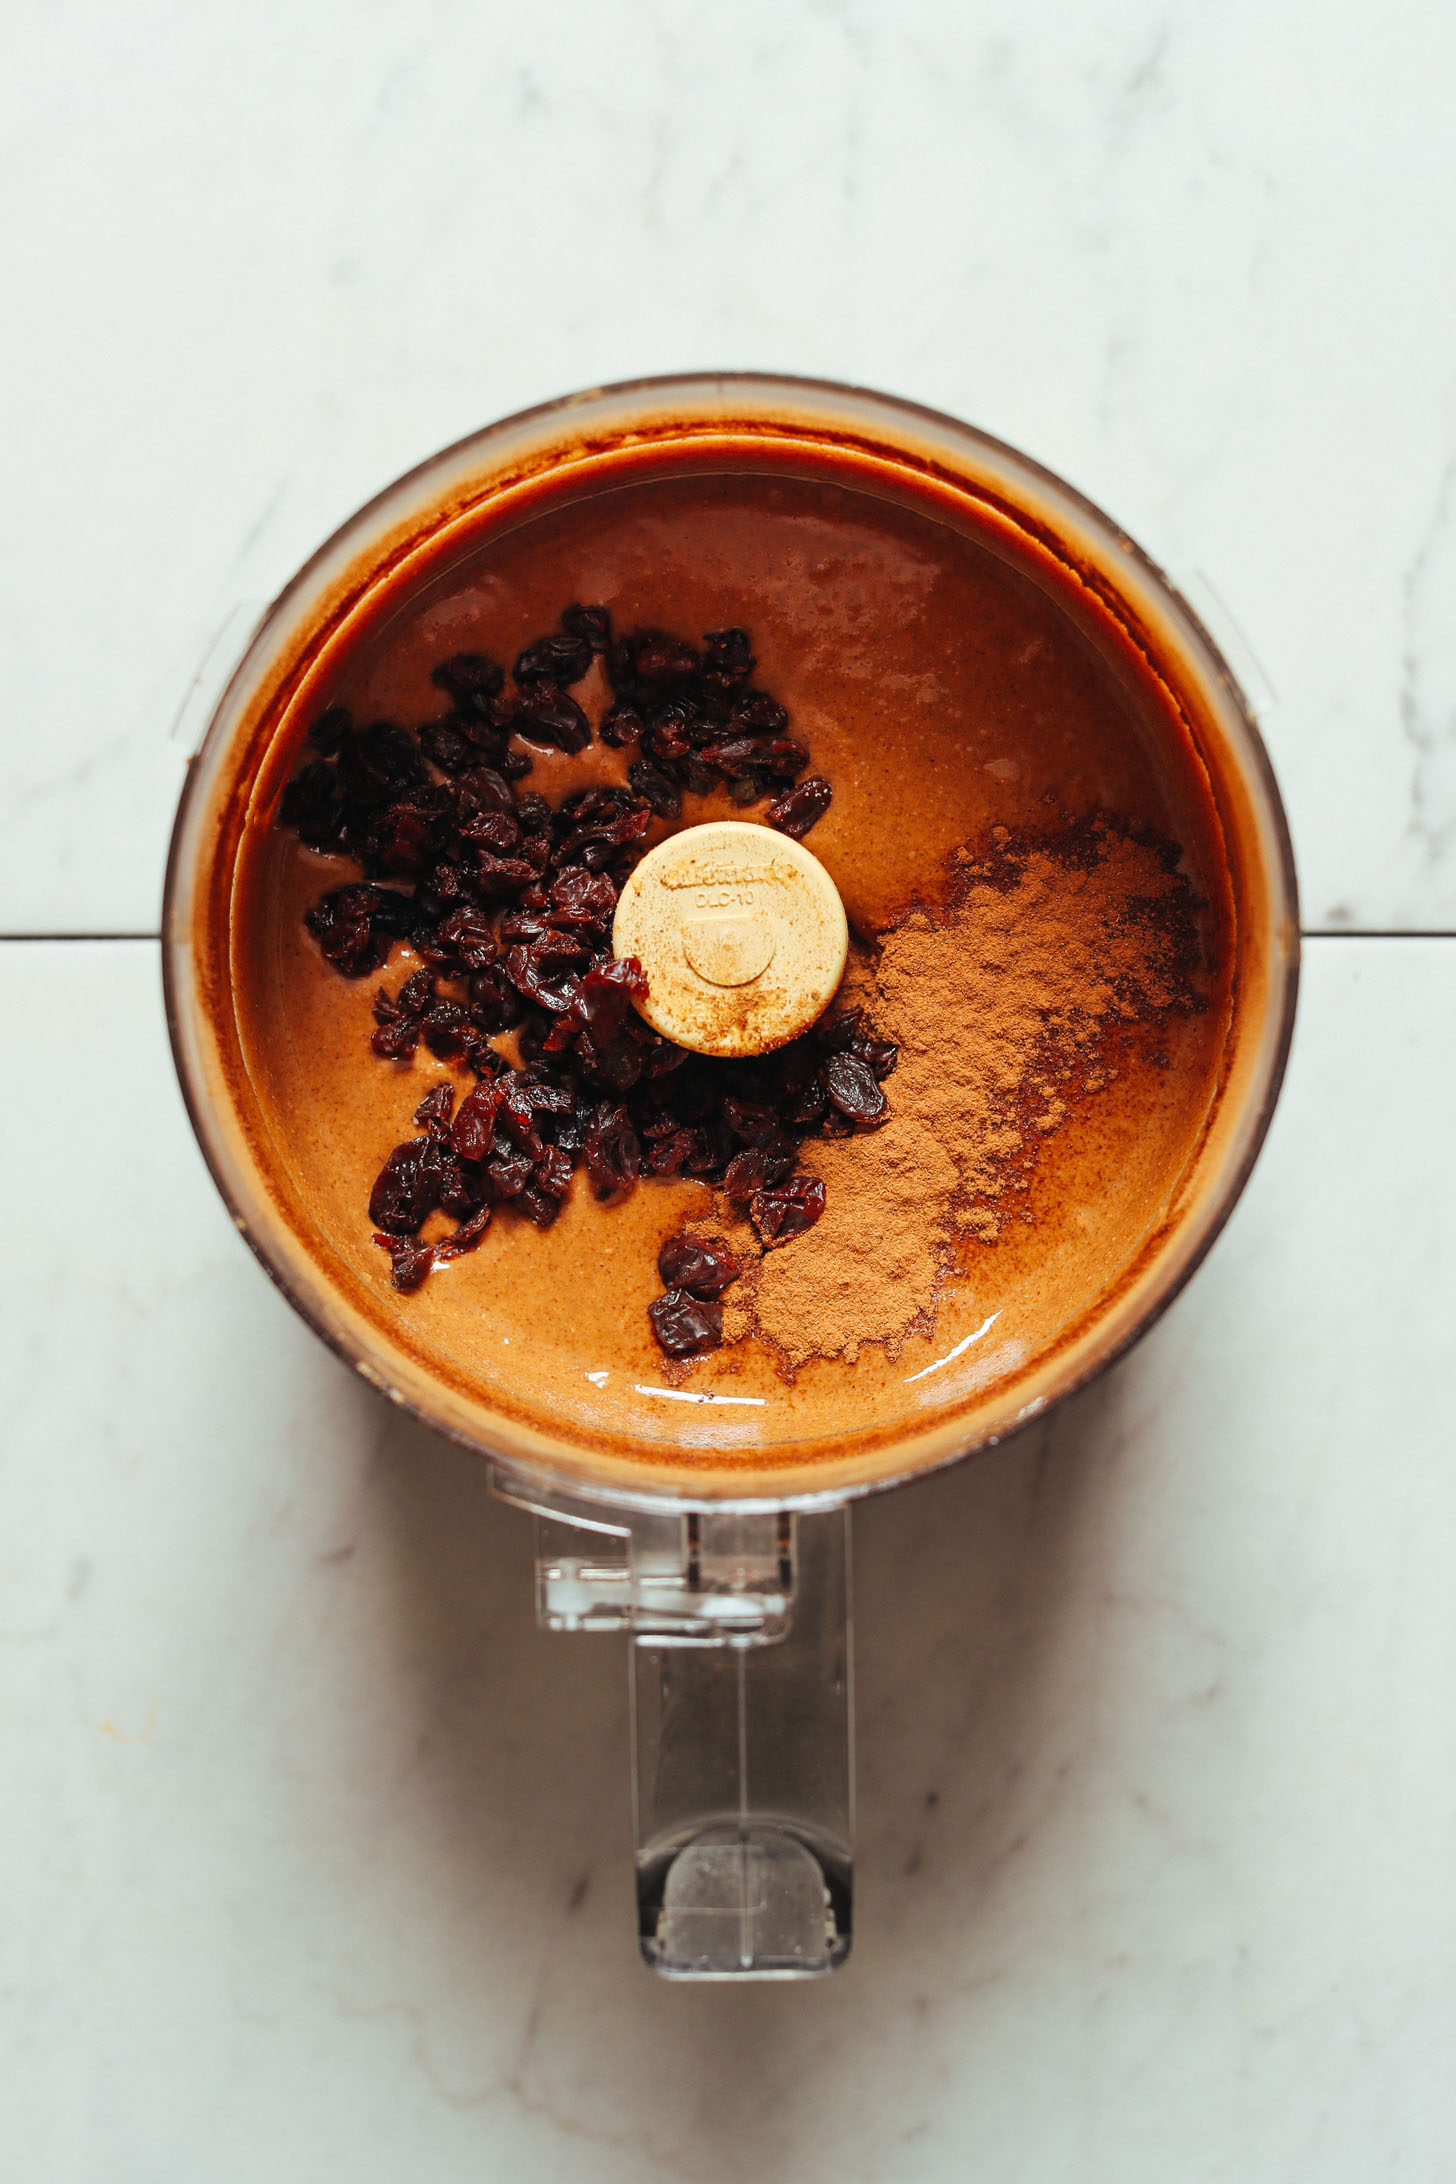 Food processor filled with smooth homemade peanut butter, raisins, and cinnamon